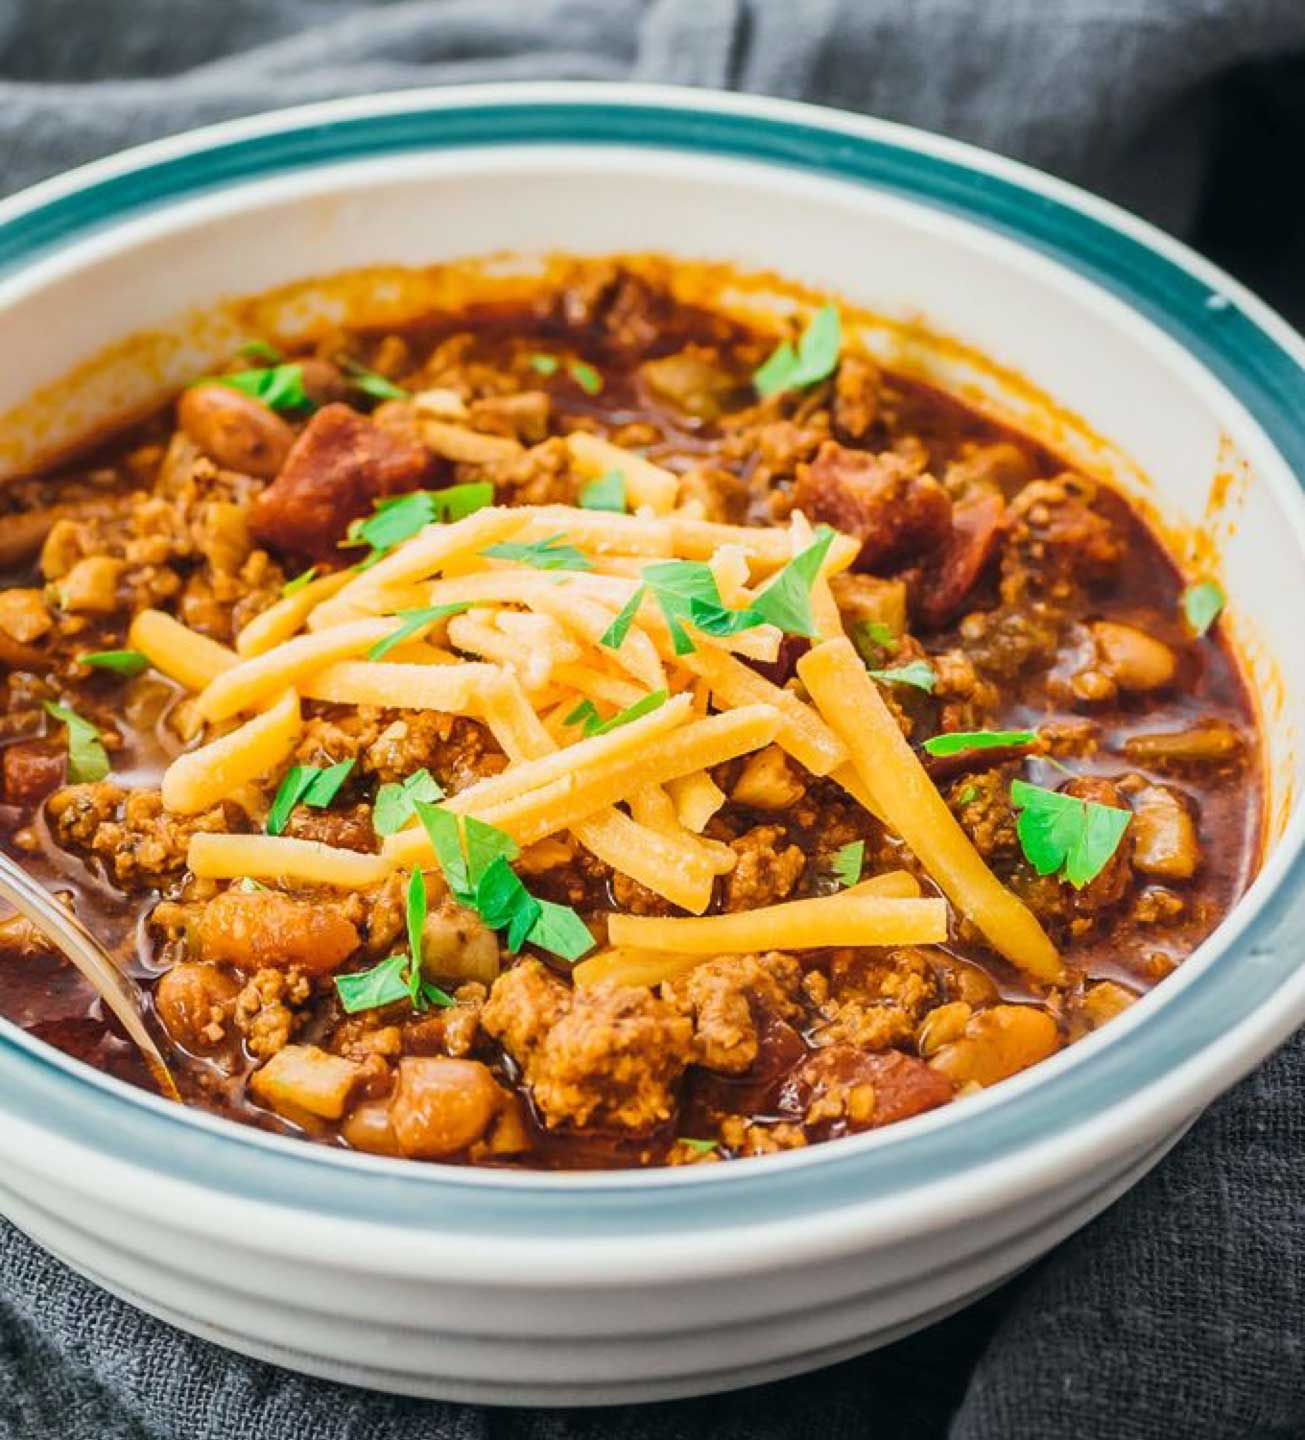 Check out this scrumptious Instant Pot Chili from Julia at Savory Tooth. (Note that, although Julia calls for lean ground beef in this recipe, she does mention an option of substituting ground turkey or chicken, if you prefer.) And be sure to check out ALL of our pressure cooker chili recipes … we've got lots more for ya!